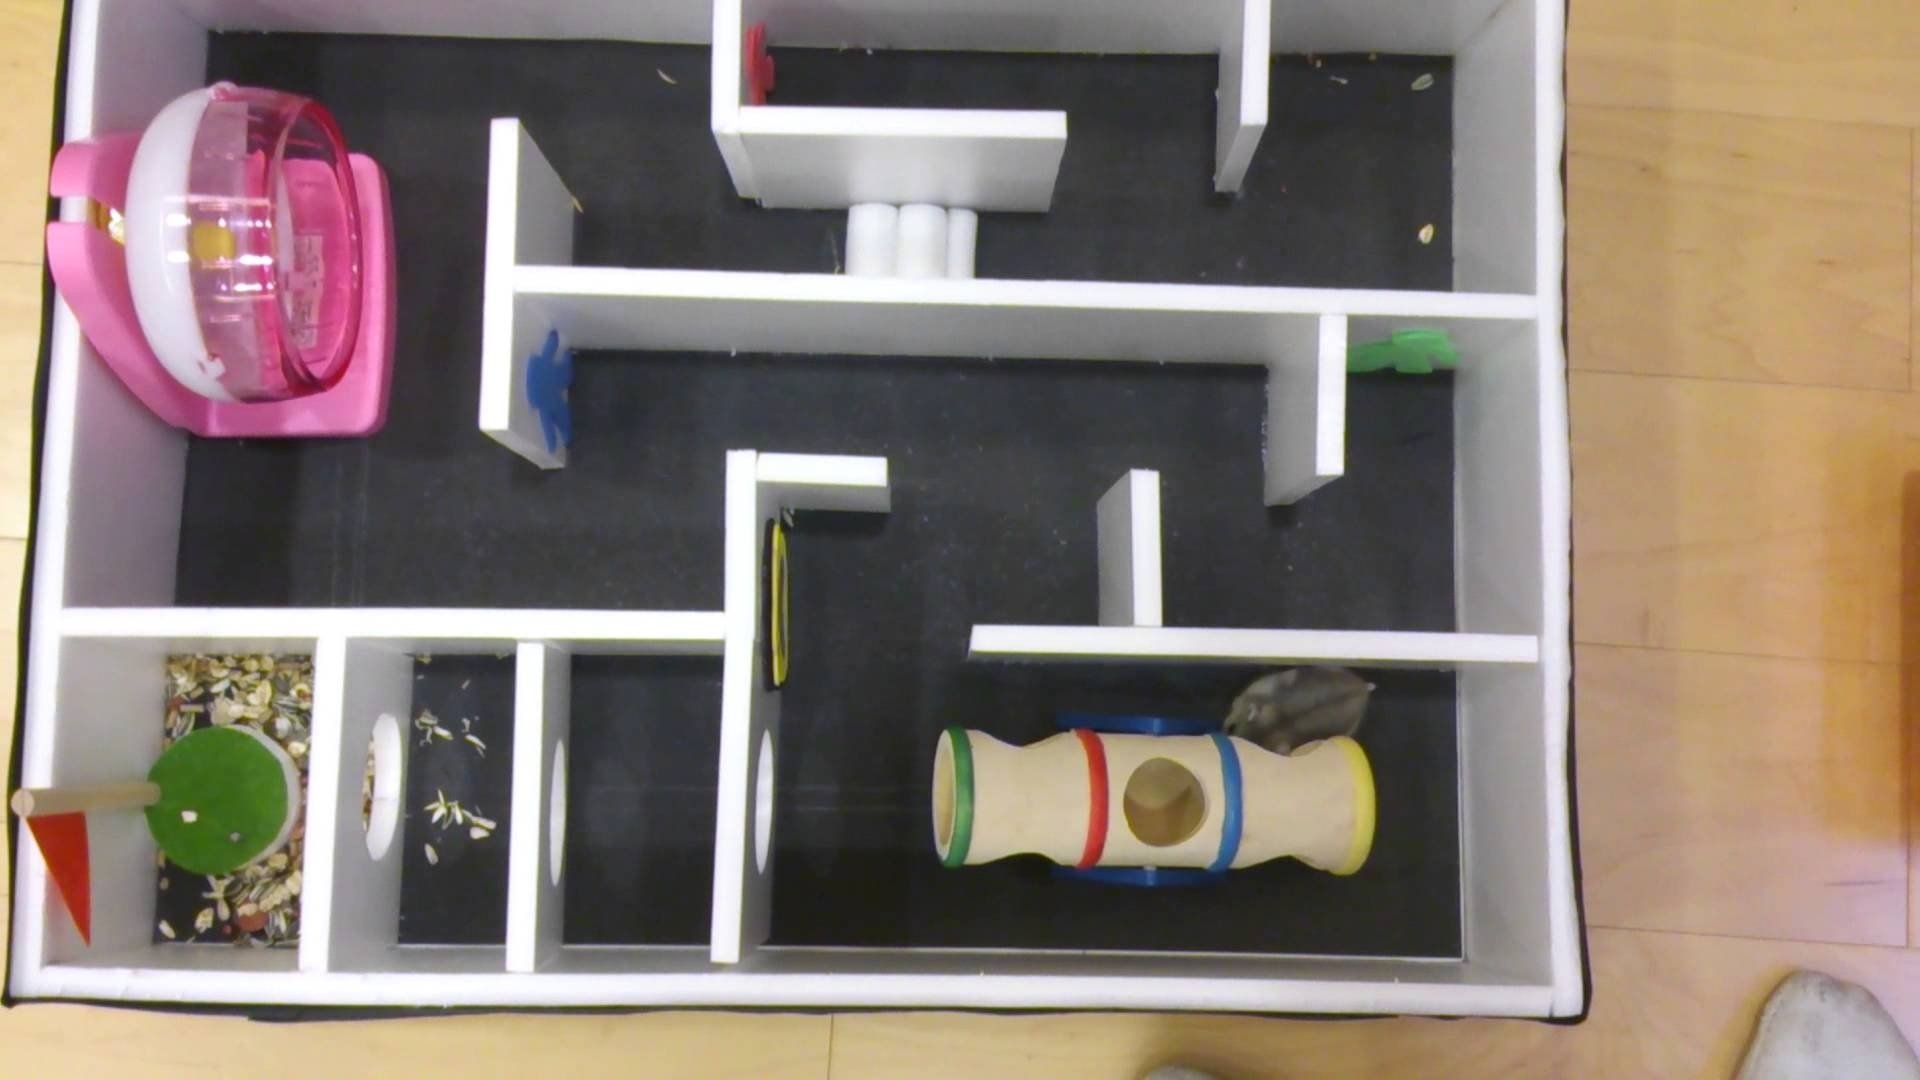 10 Stunning 9Th Grade Science Fair Project Ideas dylan tangdanny chen hamster maze9th grade science fair project 3 2020